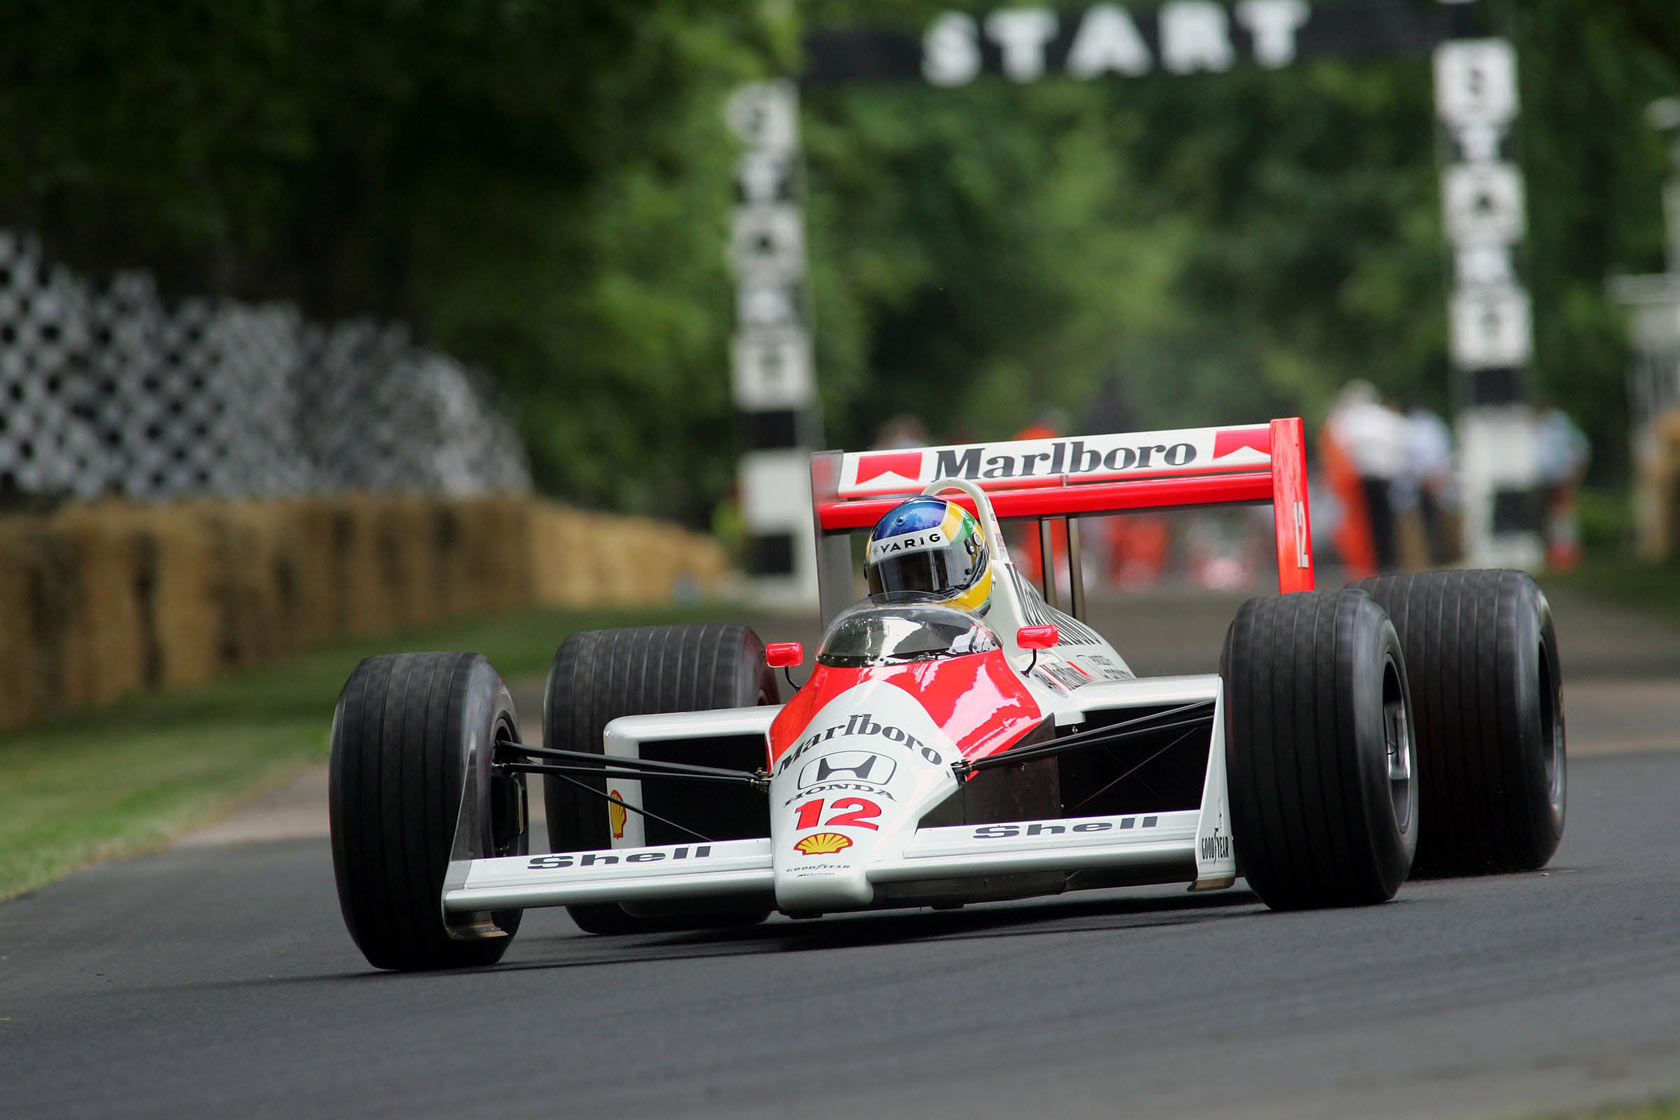 出典:http://www.f1fanatic.co.uk/2009/07/01/100-pictures-of-f1-drivers-and-cars-at-the-goodwood-festival-of-speed/mclarenmp44_1988/